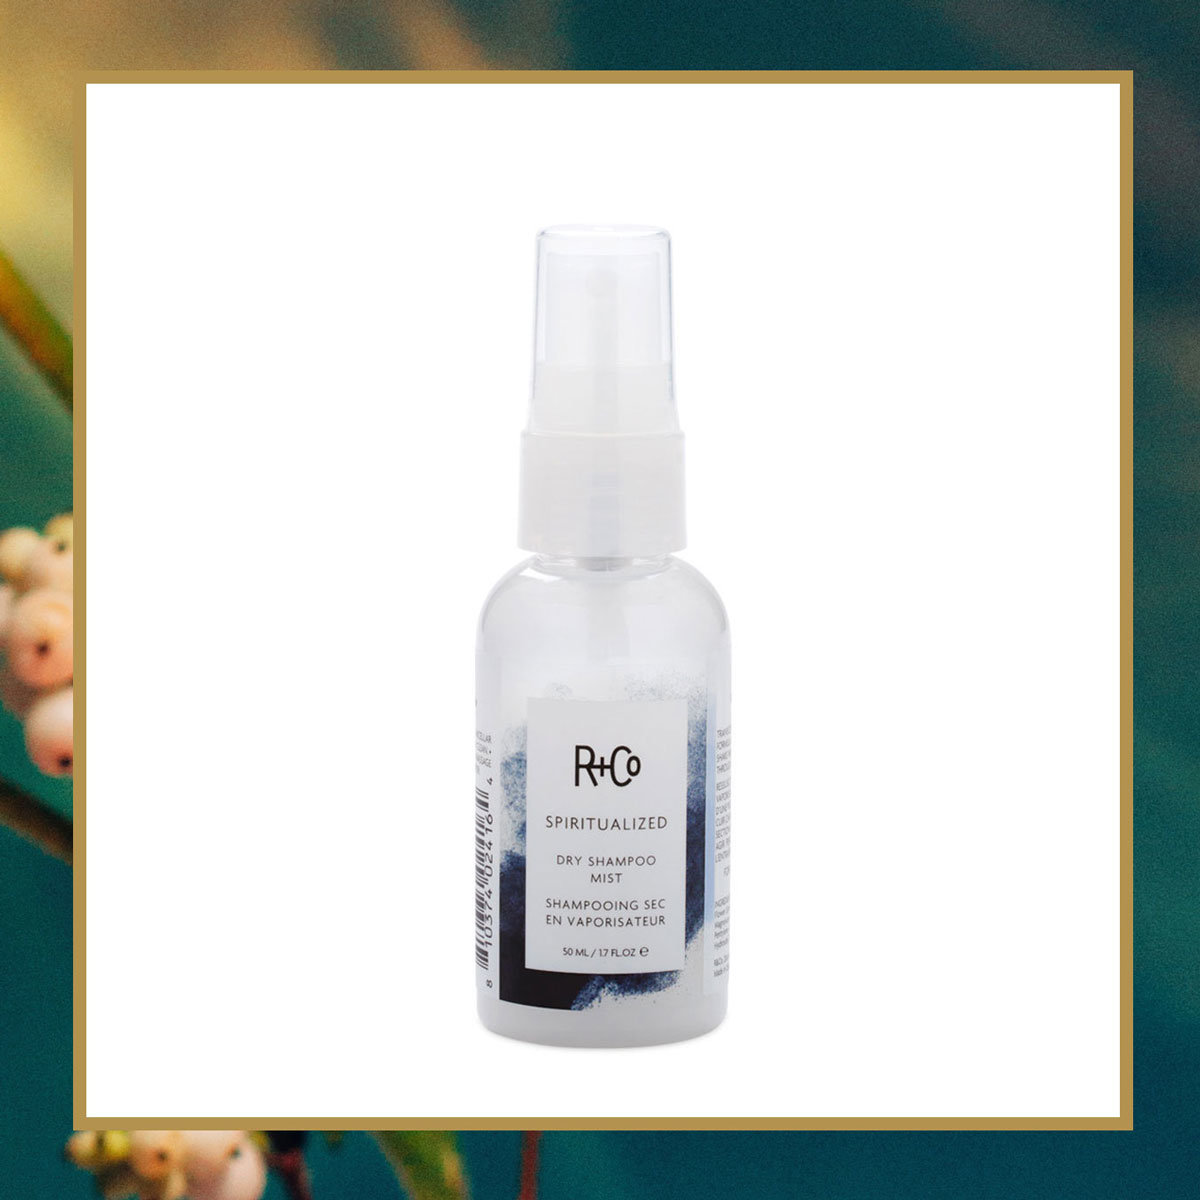 Spend {promo_threshold}+, Receive R+Co Spiritualized Dry Shampoo Mist (Travel)